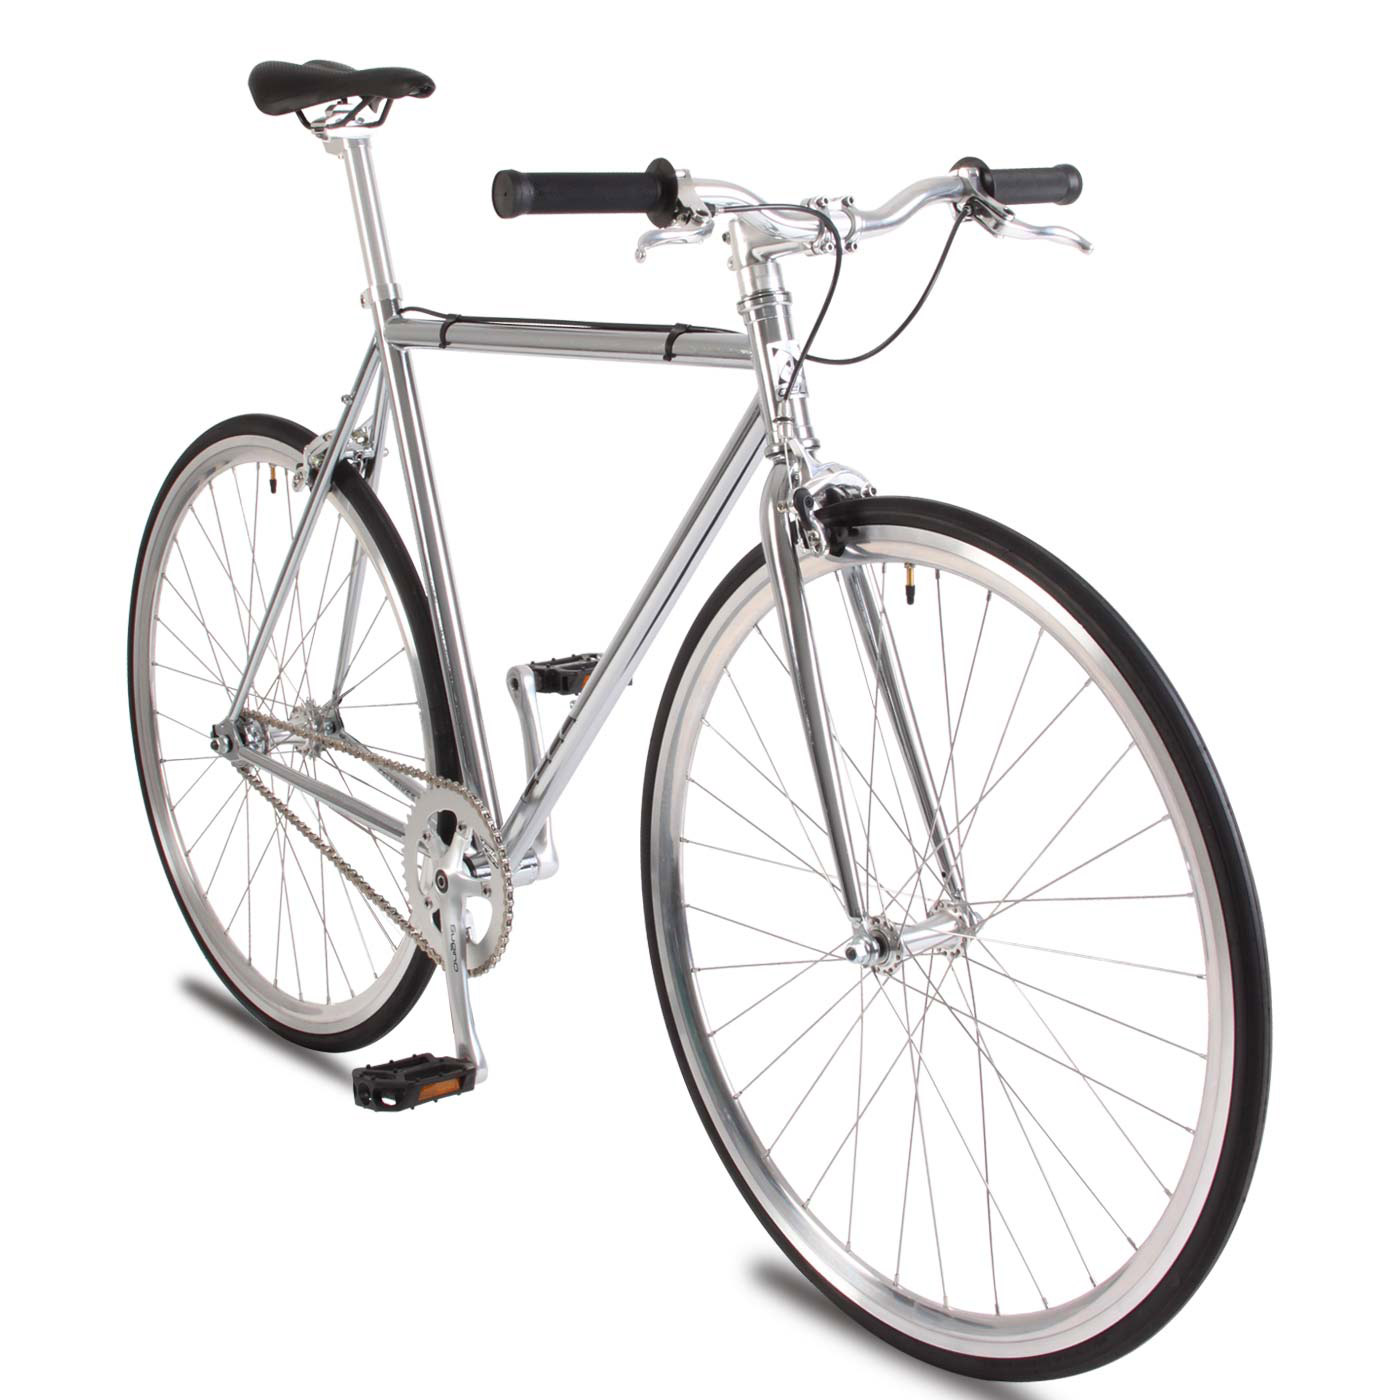 cell-fixie-bike-weight-8